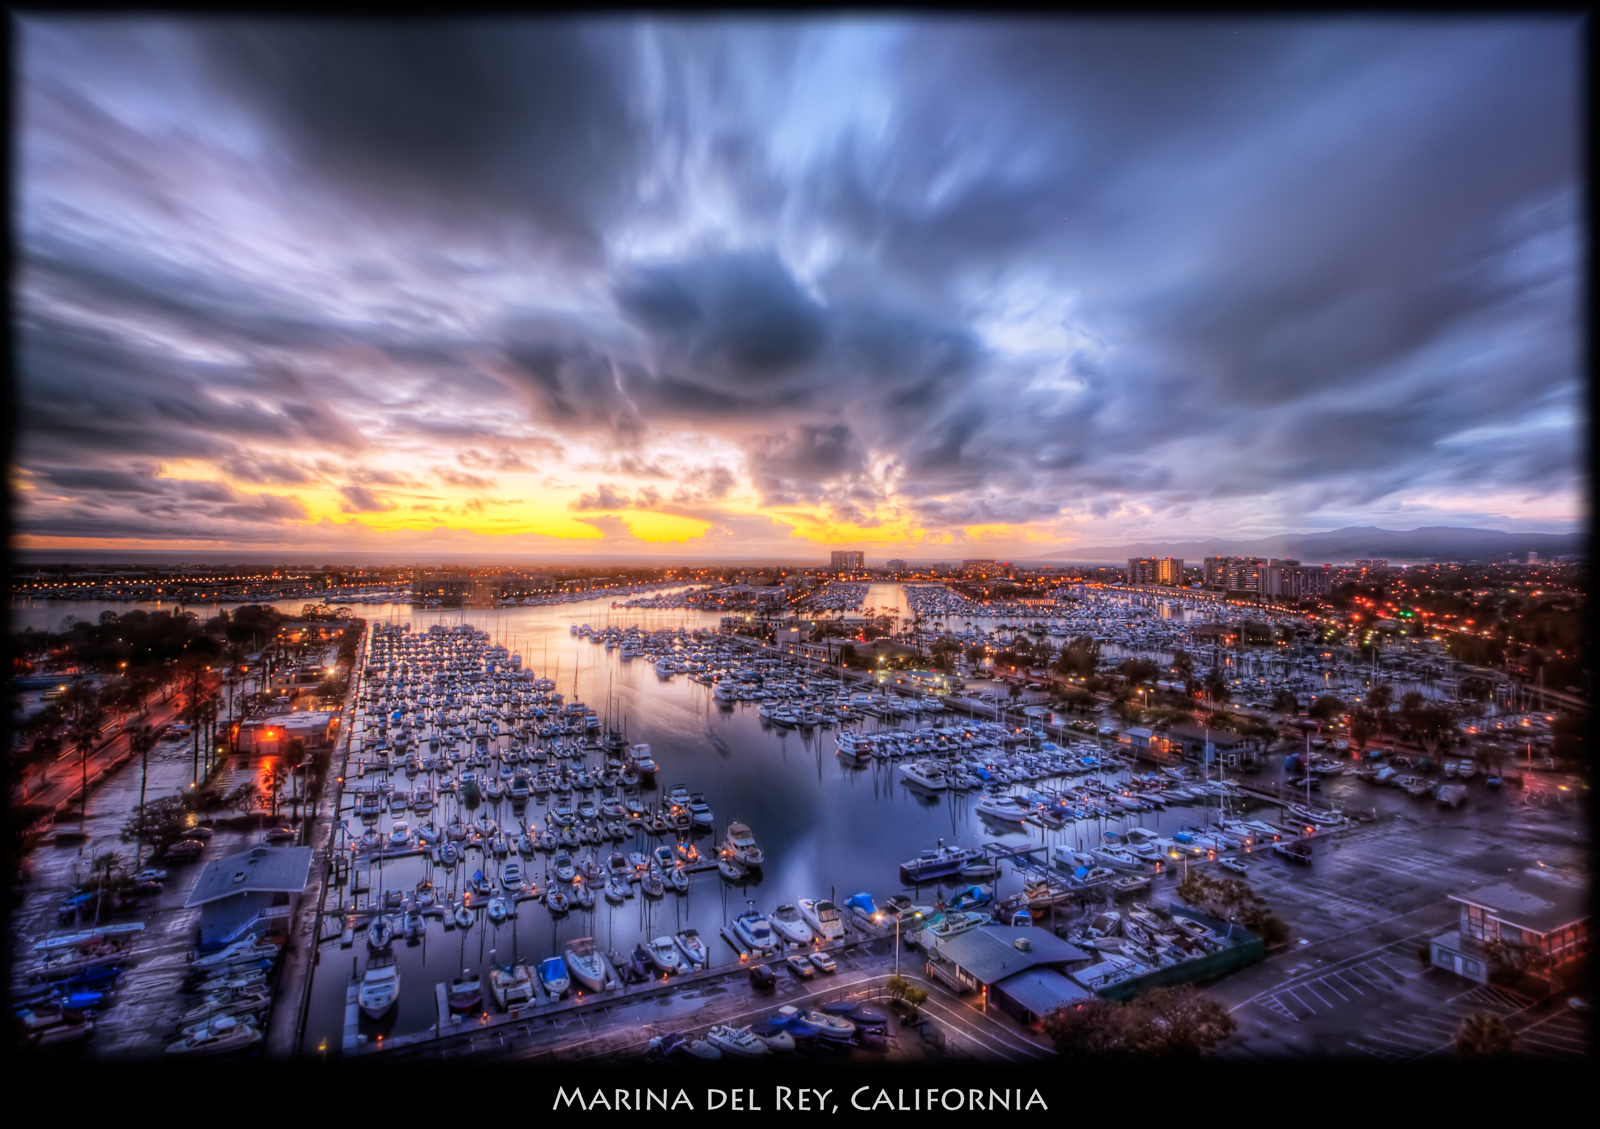 View of the marina from my office when the sun had gone down and the lights started to get turned on. ISO 200, 11mm, f7.1, 8 exposures. HDR build using Photomatix, and tonemapped using Details Enhancer. Imagenomic noise reduction, Nik Pro Contrast and Remove Color Cast to try to neutralize the purple cast created by the energy conservation film on our windows. Curves in PS and slight blurring to tame some of the tonemapping on the clouds.